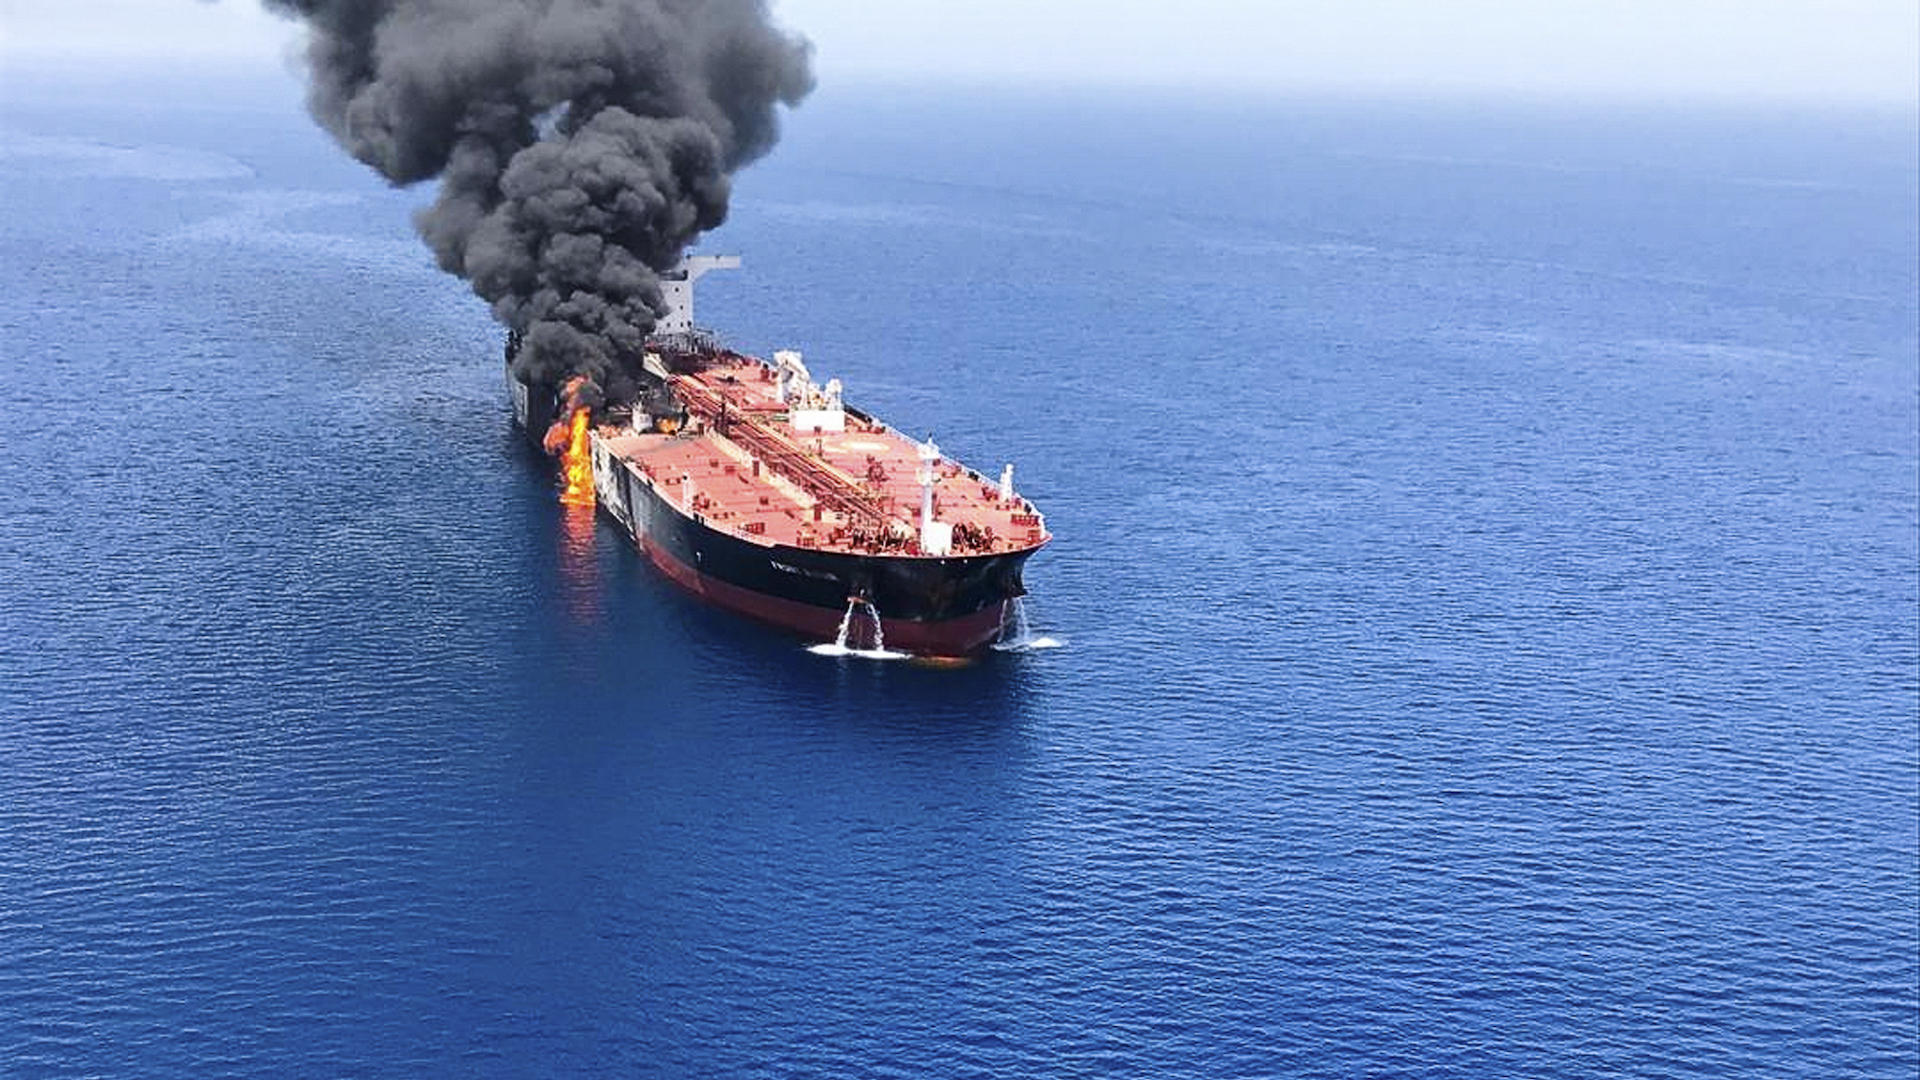 Japanese ship owner contradicts U.S. account of how tanker was attacked